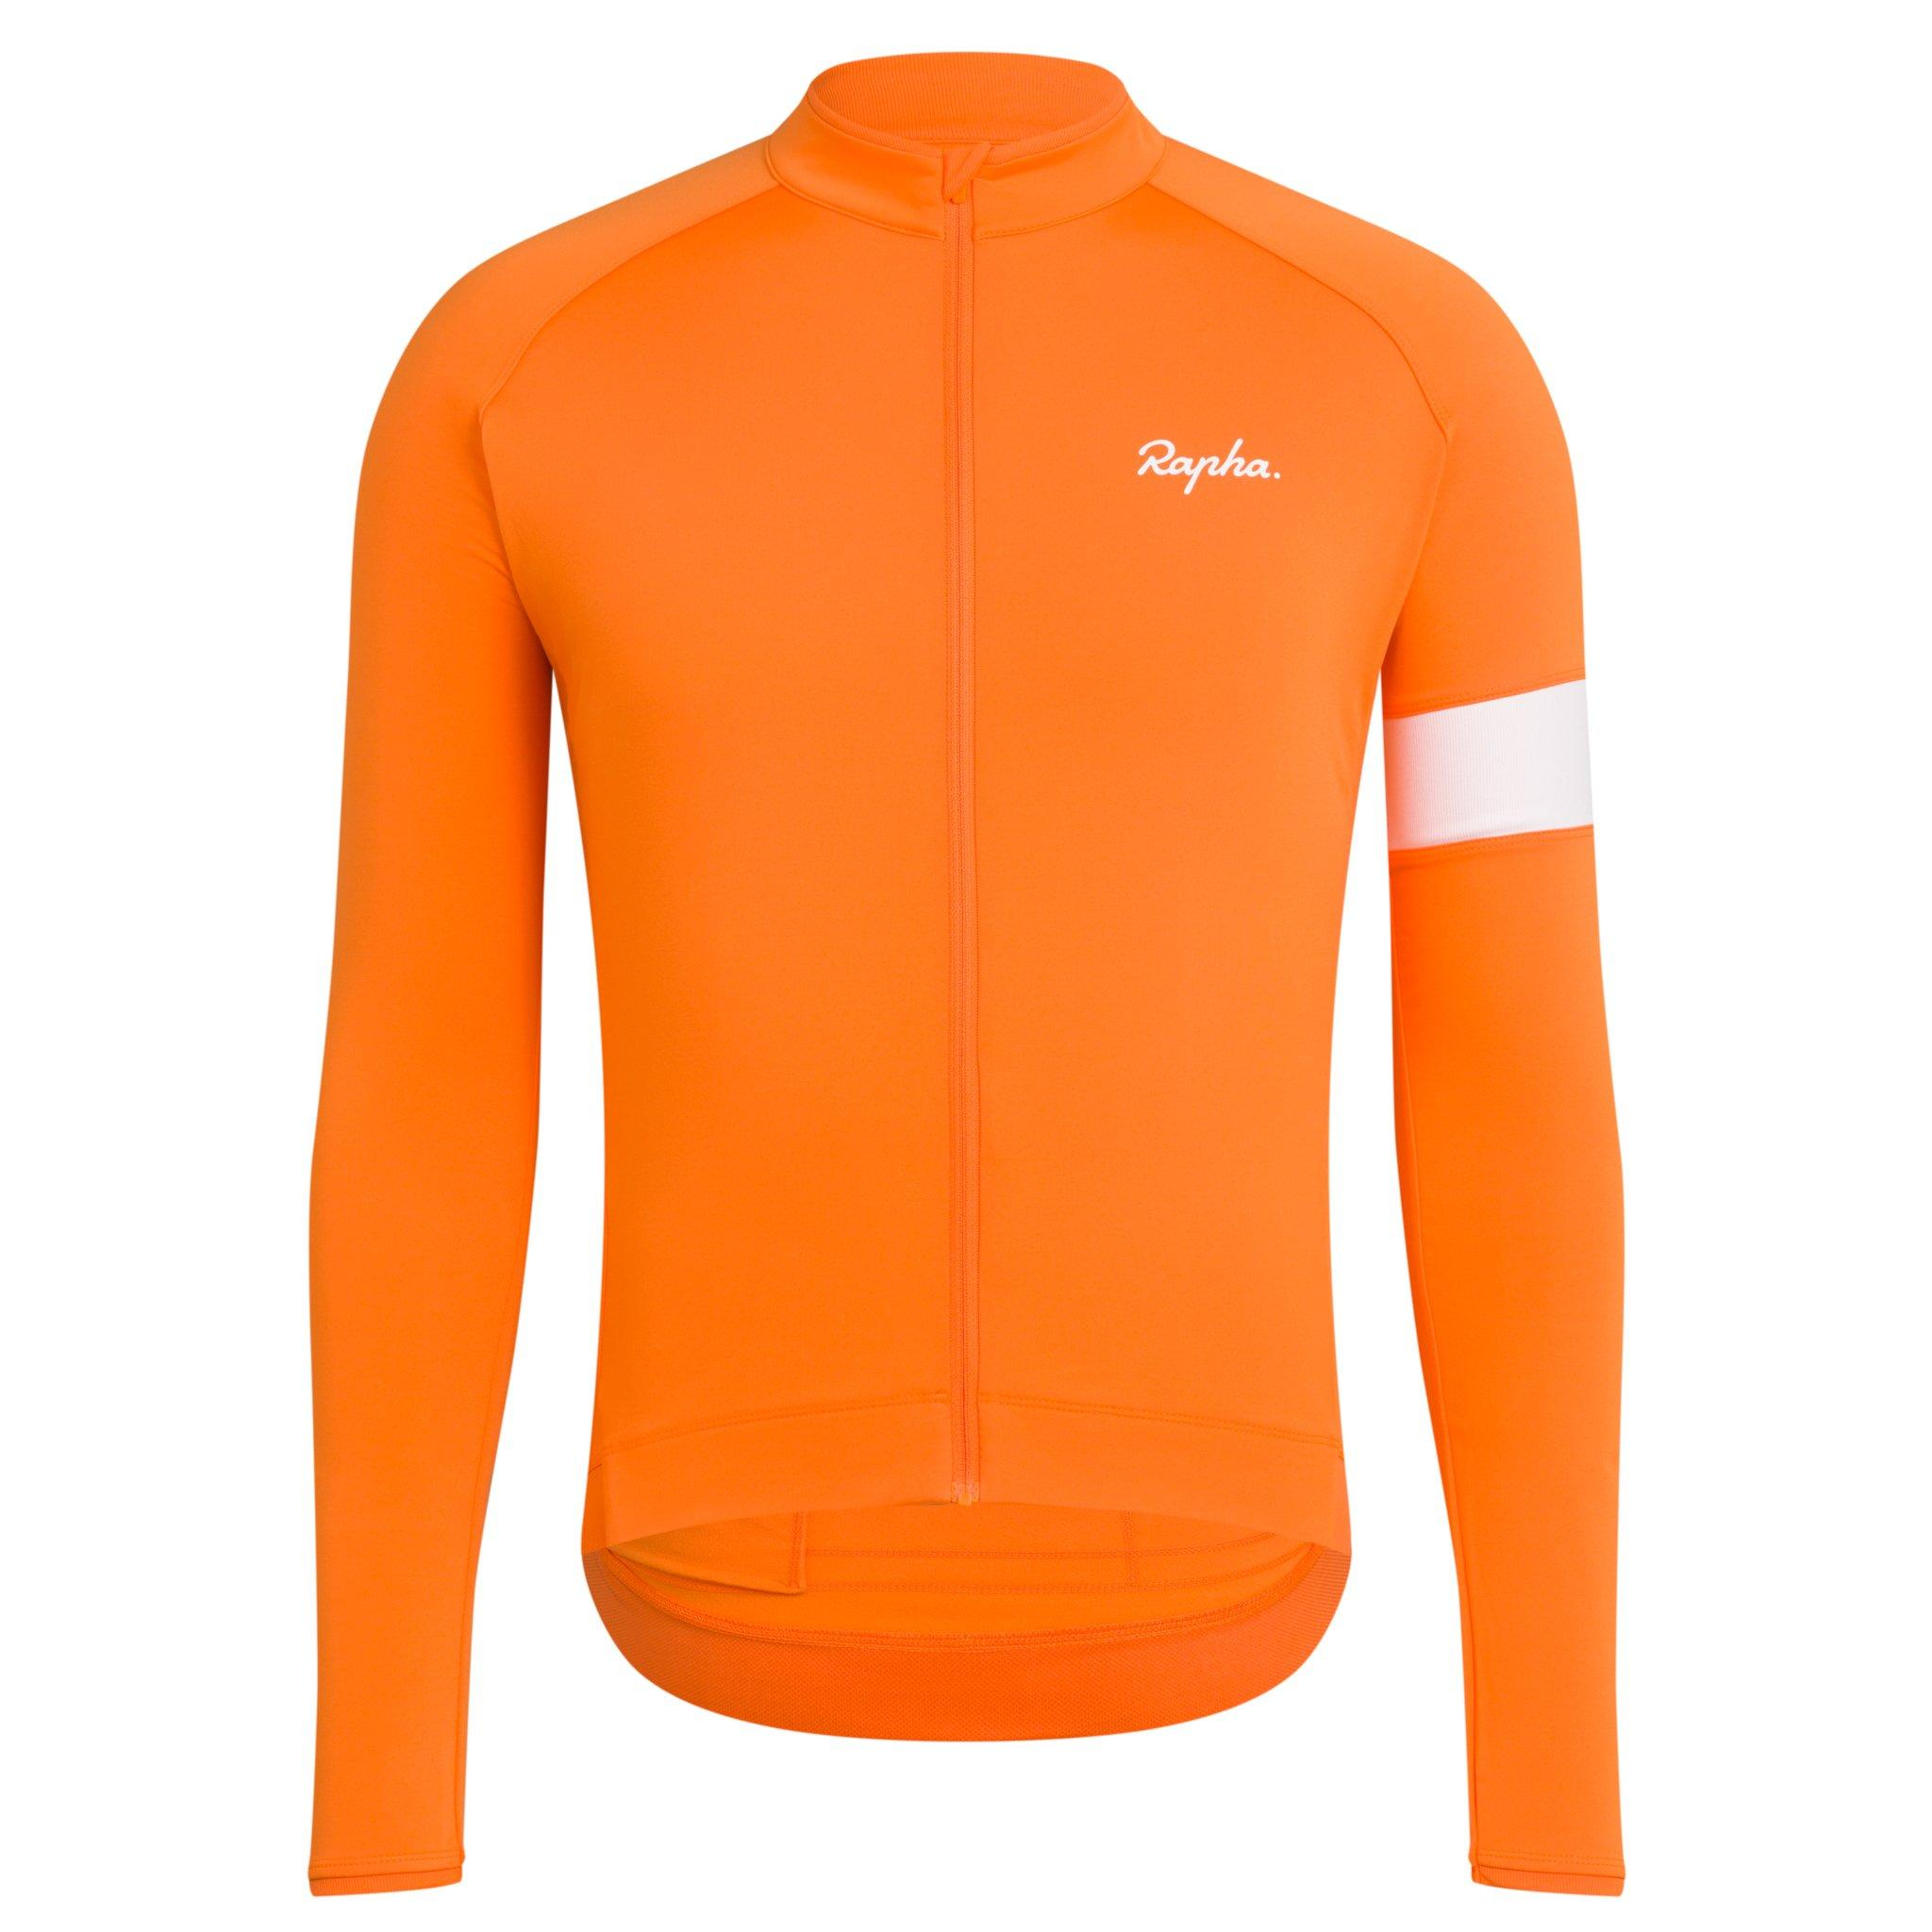 MAILLOT RAPHA CORE LONG SLEEVE BRIGHT ORANGE